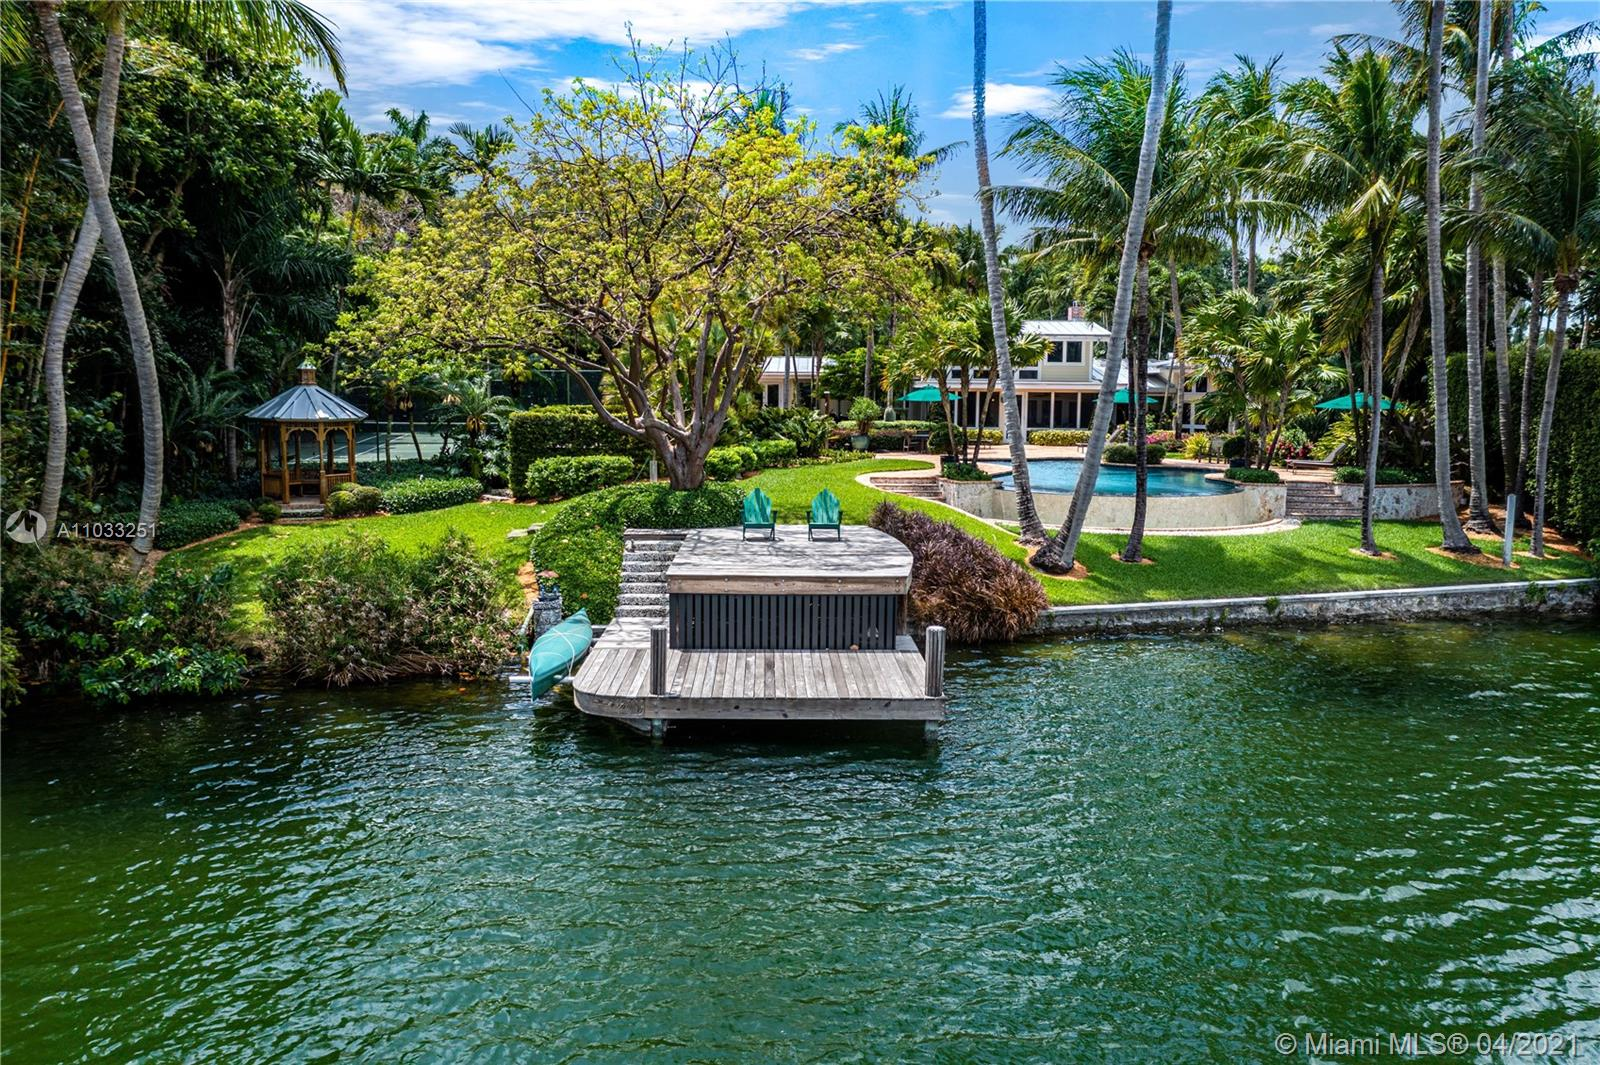 Situated in Hammock Lake, one of the most desirable gated communities in Coral Gables, this gorgeous 6,427 Sq. Ft. home, with 4 BR and 2.5 BA, showcases breathtaking lake views, elegant light-filled living spaces, and resort-like gardens, offering a peaceful and harmonious connection with nature. The home includes a living room with fireplace, formal dining room, and chef's kitchen with walk-in pantry, Wolf and Sub-Zero appliances, and an eat-in island that opens to a gracious sunroom. A charming wood staircase leads from the foyer to the second-floor main suite, with a luxurious bath. Designed for comfortable living, the home also features a theater room with custom-made bar, office, gym, screened-in porch, beautiful infinity pool and tennis court.  A captivating retreat in Coral Gables.